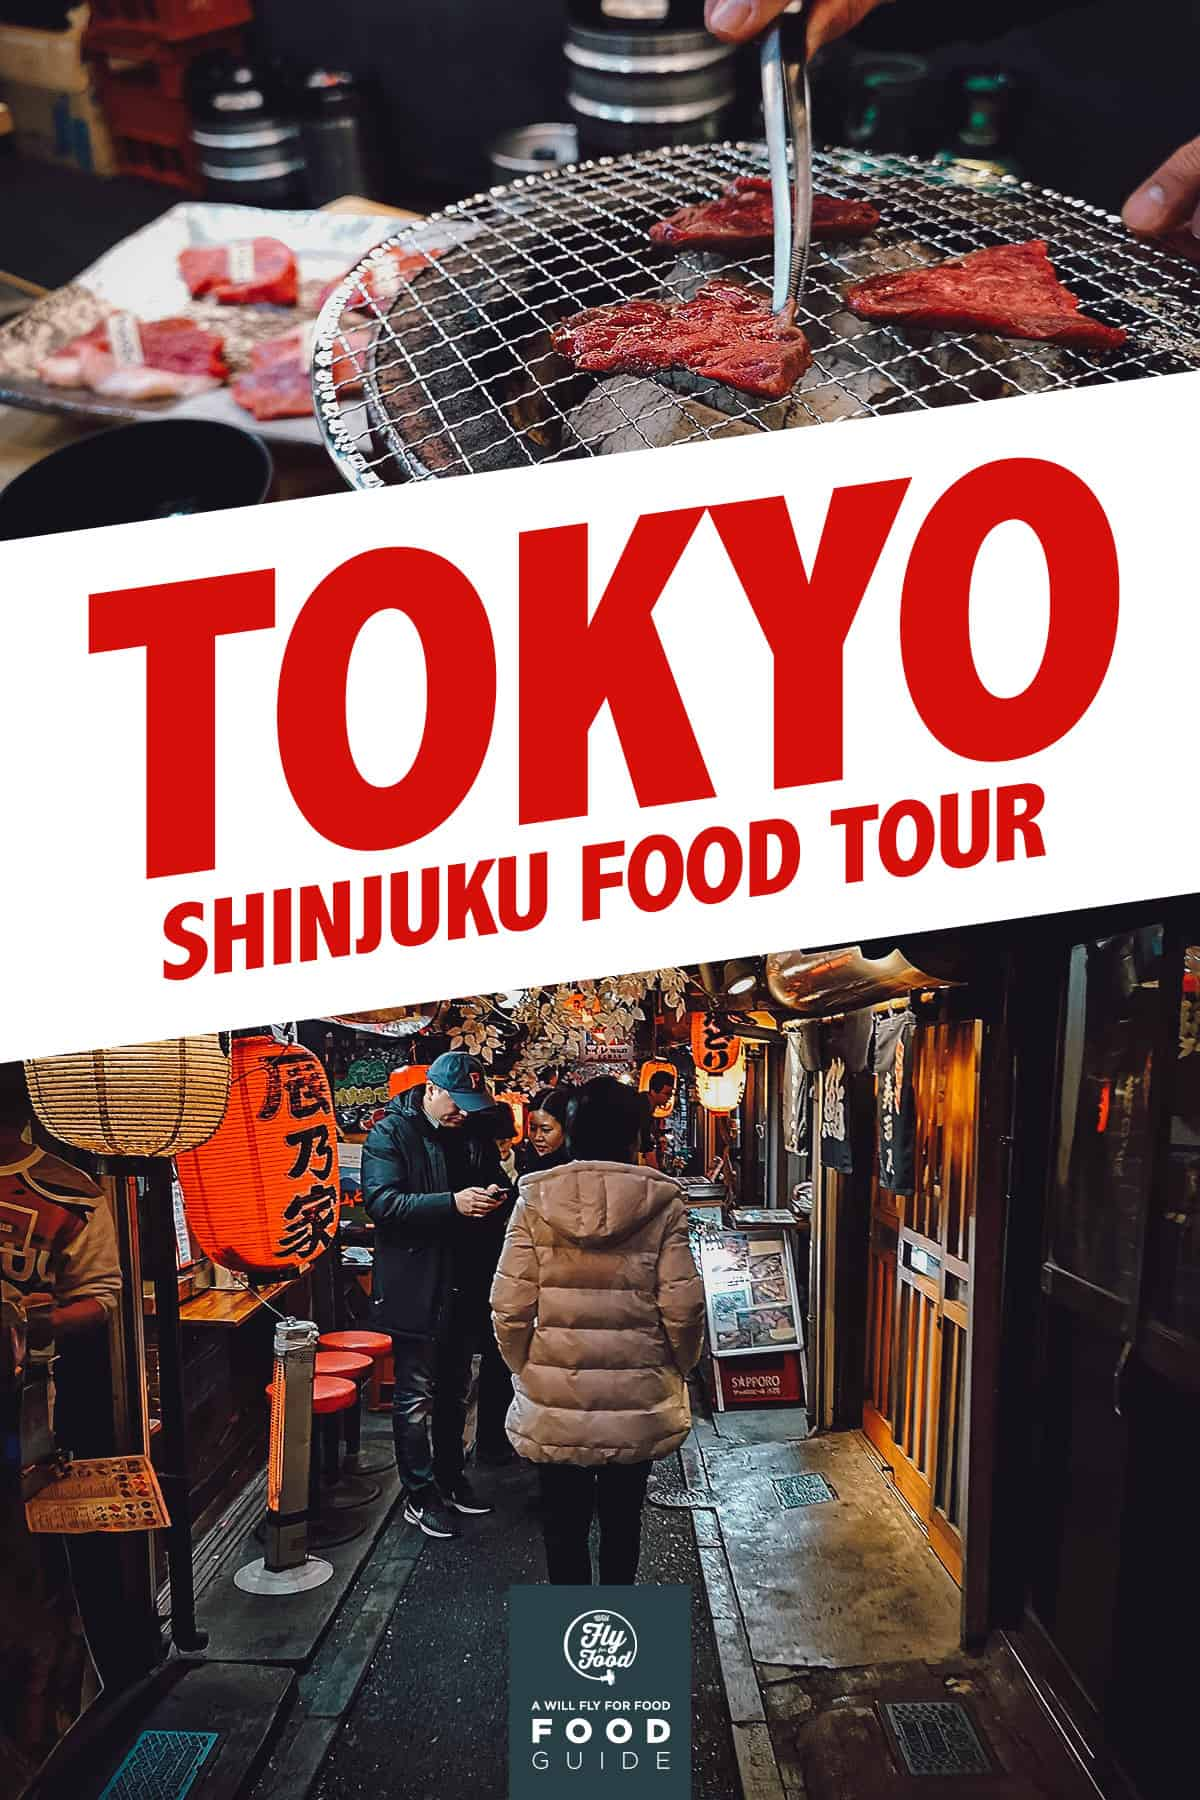 Shinjuku night food tour